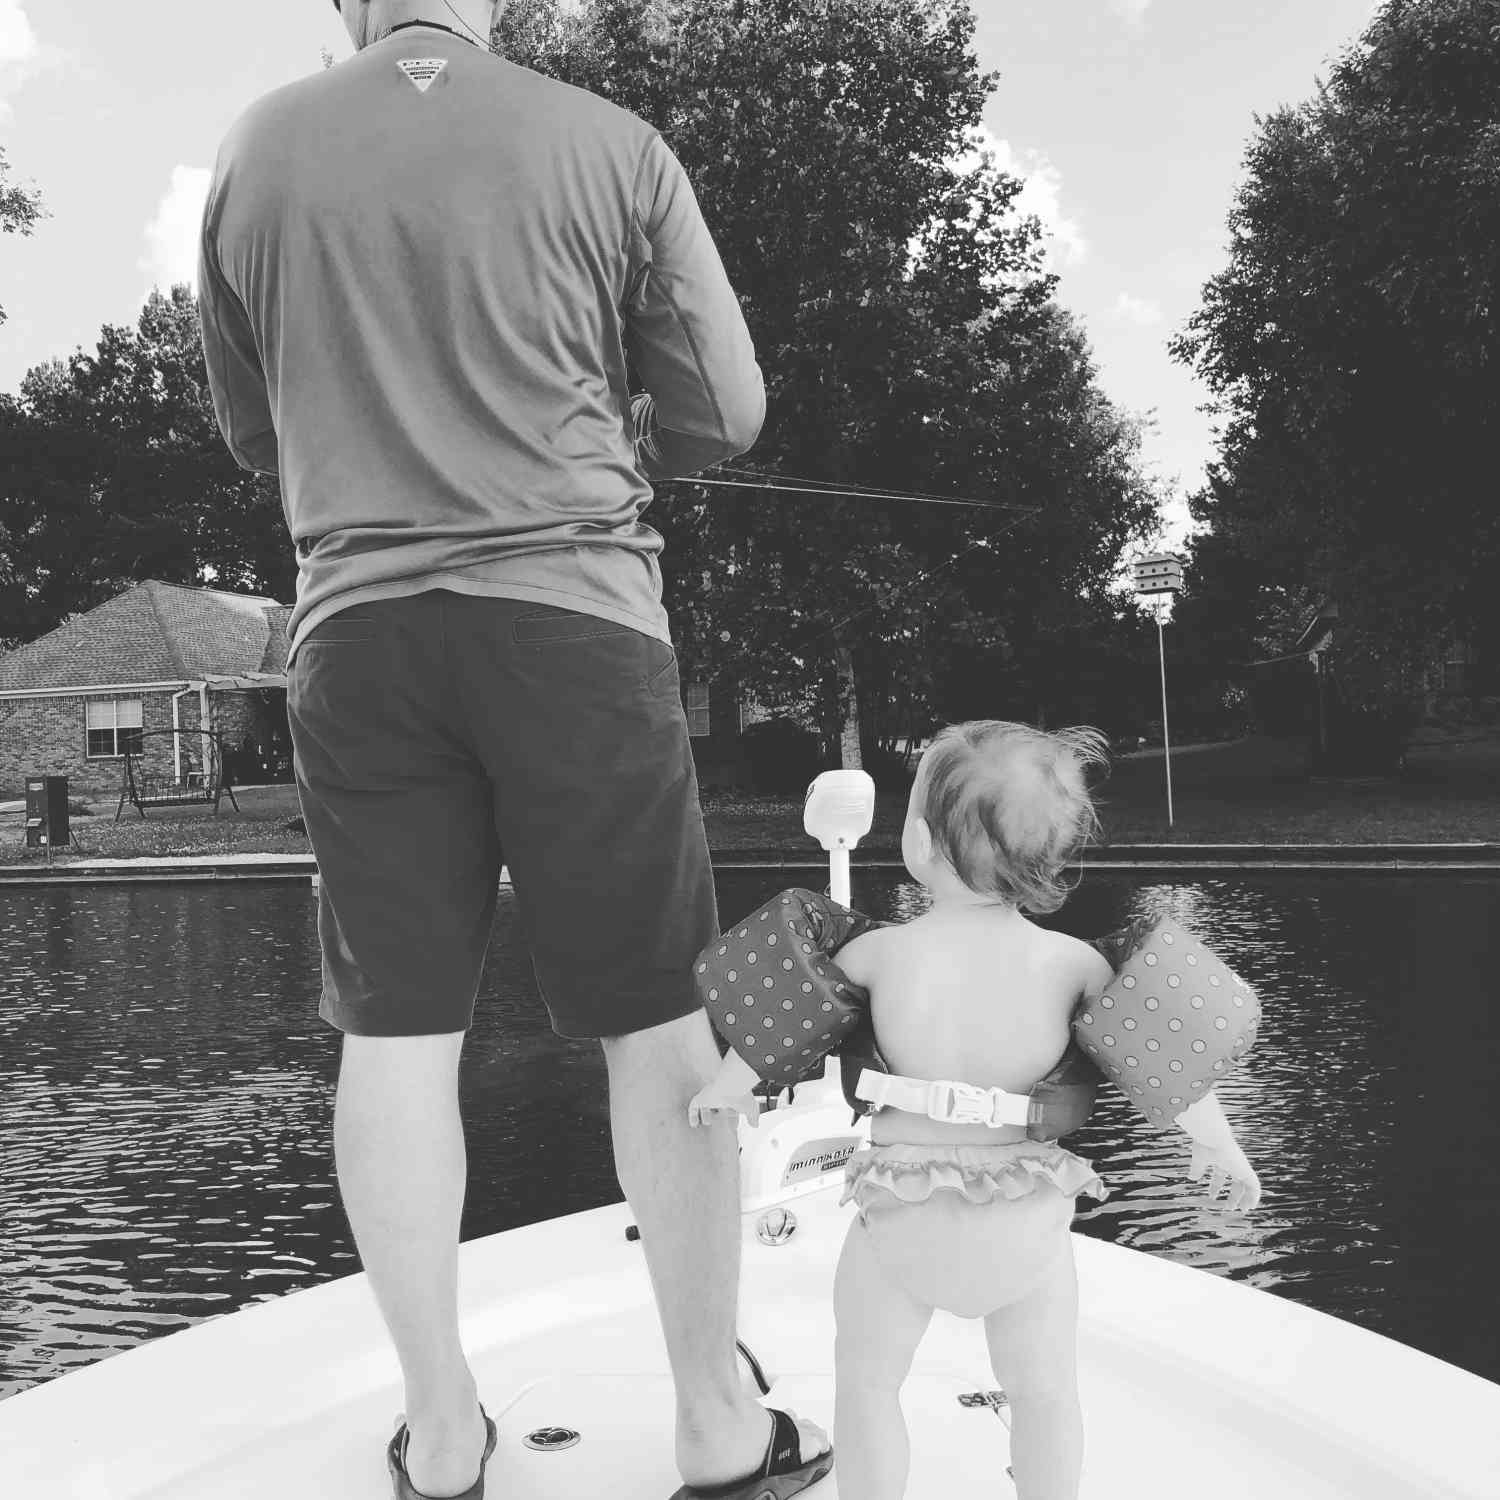 Title: She's sure loves the boat - On board their Sportsman Masters 207 Bay Boat - Location: Madison ms. Participating in the Photo Contest #SportsmanJune2018